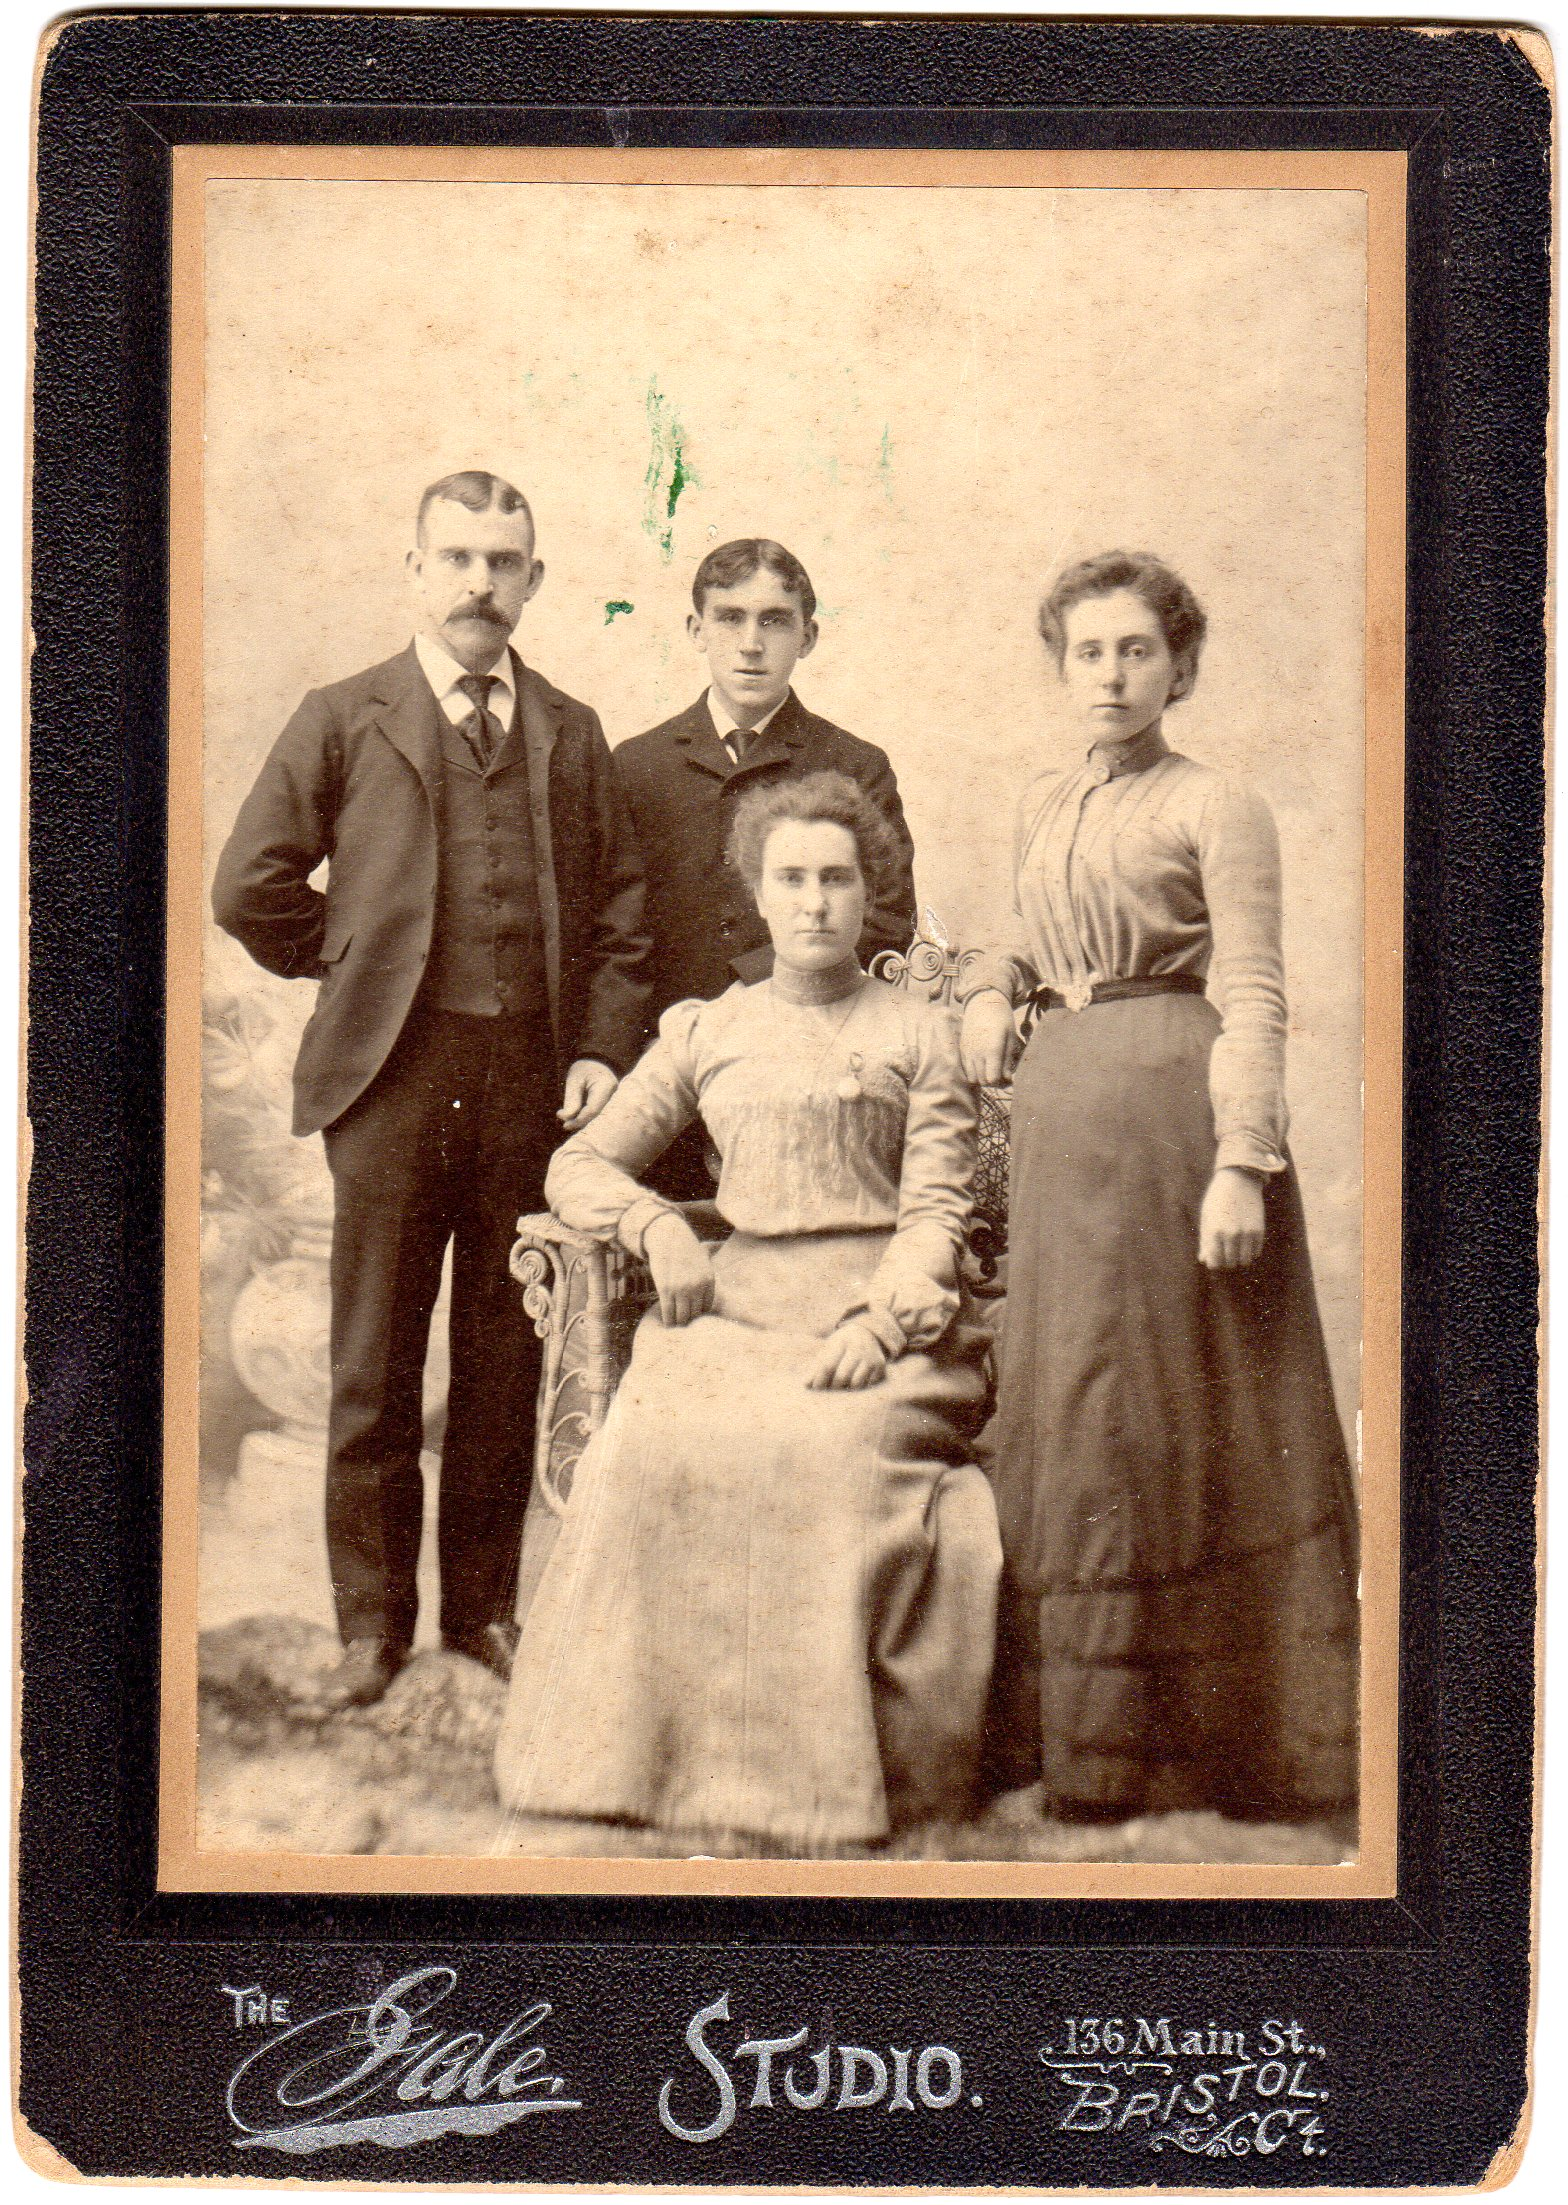 Doyle, Unknown group, Bristol, Connecticut